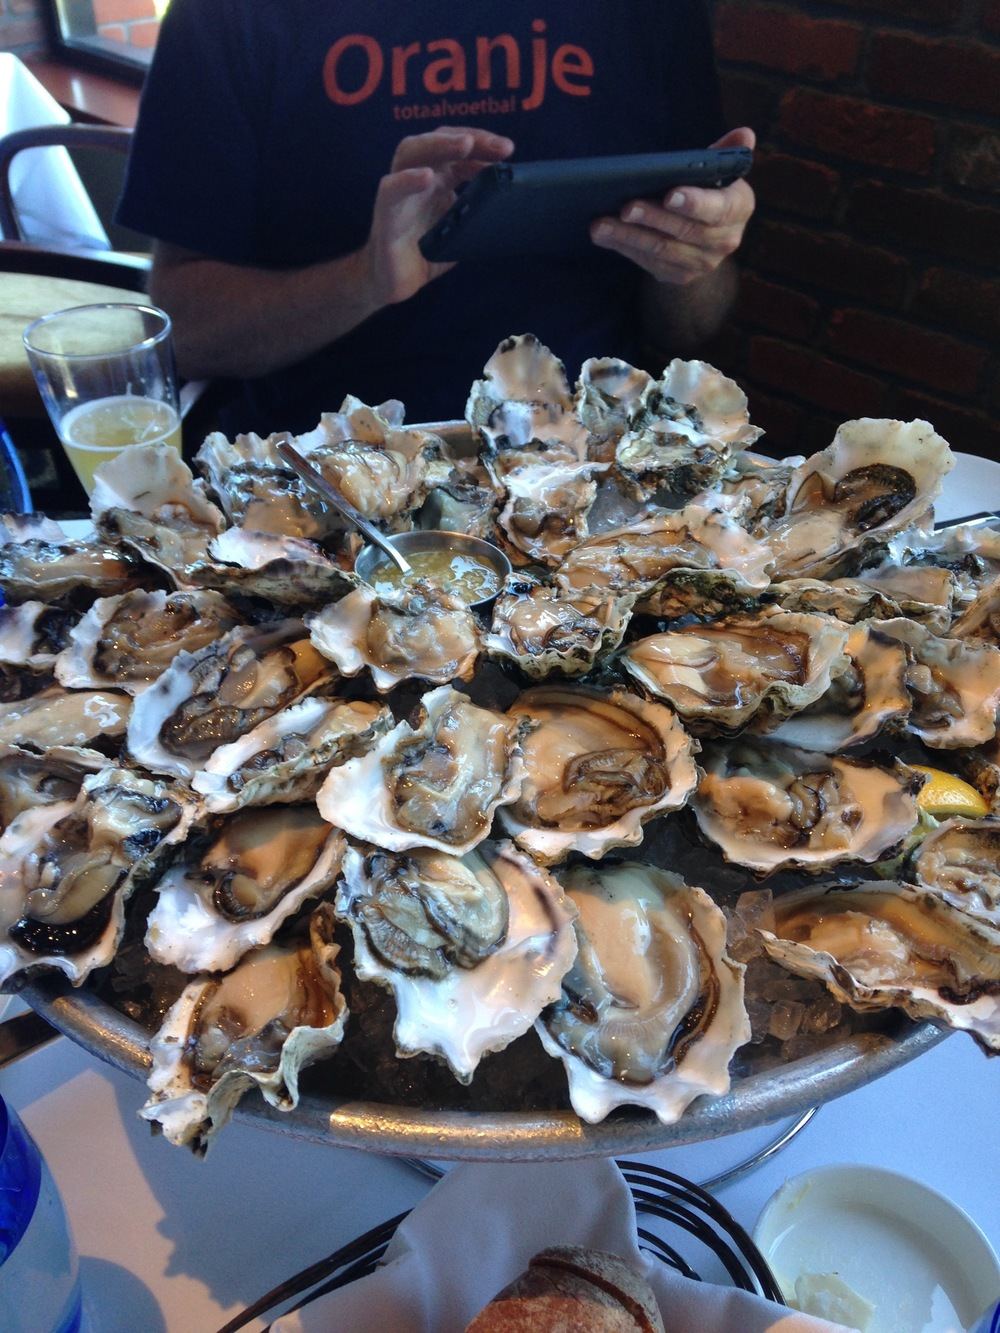 Speaking of oysters...do yourself a favor and go to  Water Bar  any day of the week between 11 and 5 and eat dollar oysters off of white cloth laced tables with view of the bay. One of the best and most beautiful deals in town!